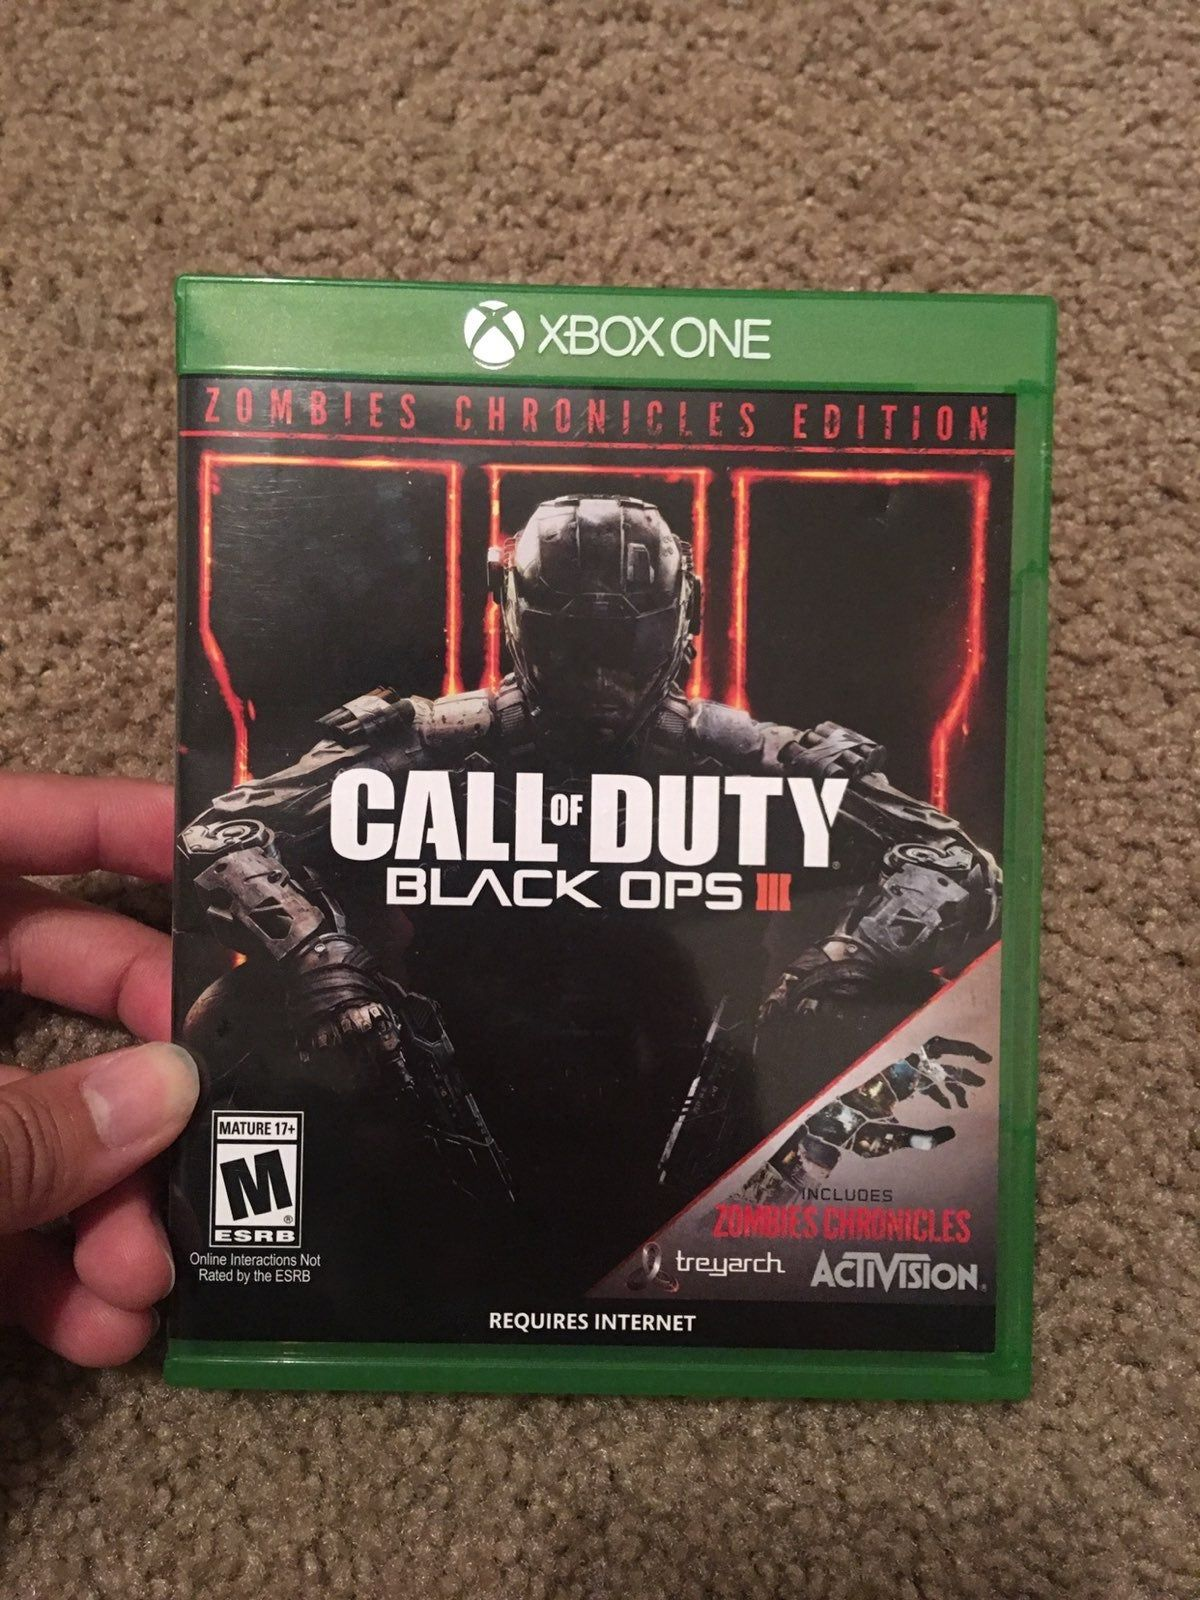 Call Of Duty Black Ops 3 Zombies Chronicles Edition For Xbox One Used Excellent Condition Pl Call Of Duty